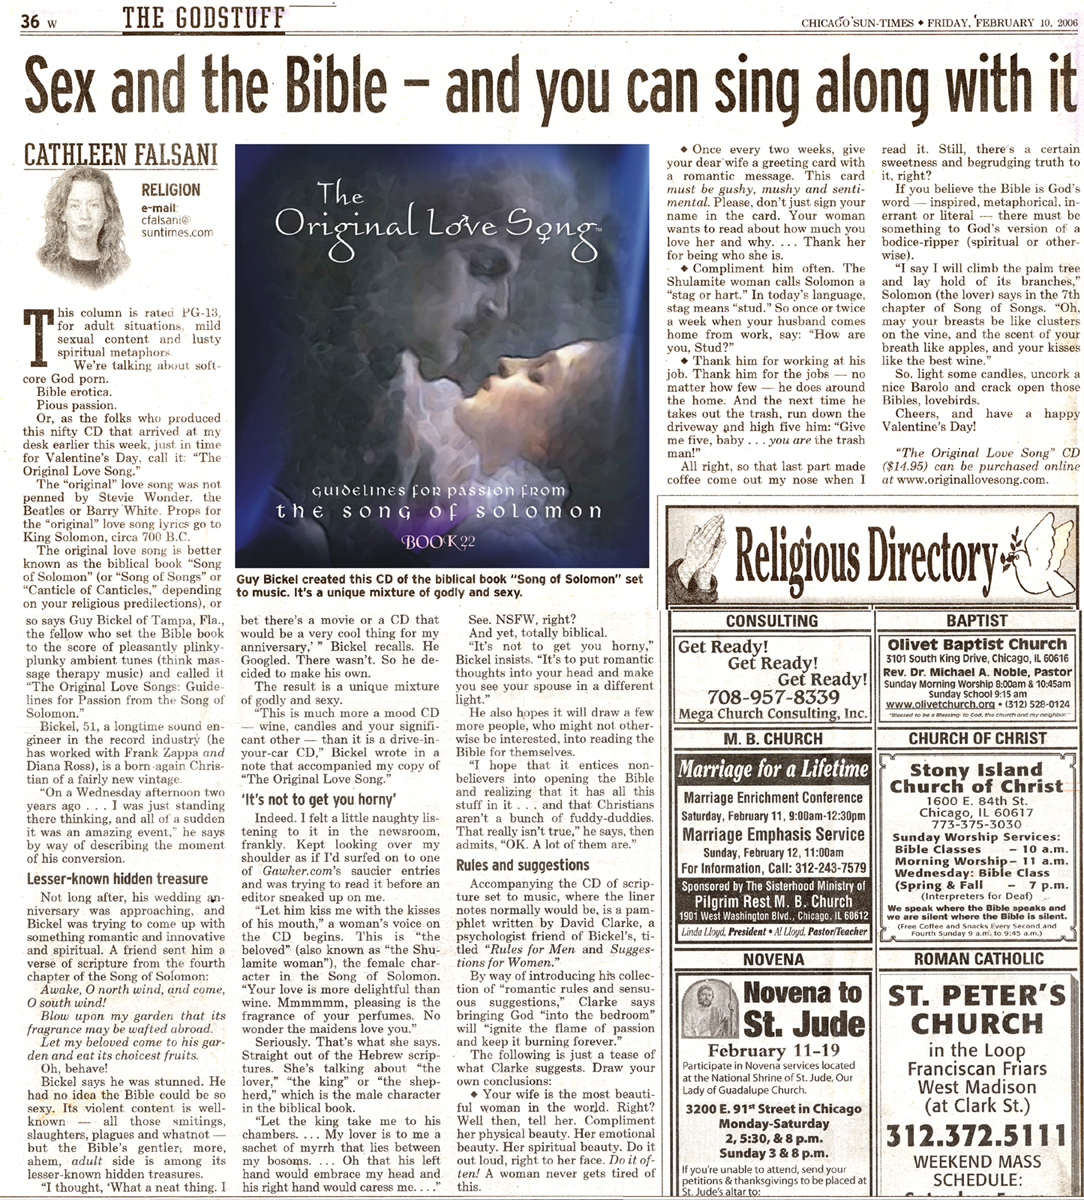 Sex and the Bible,